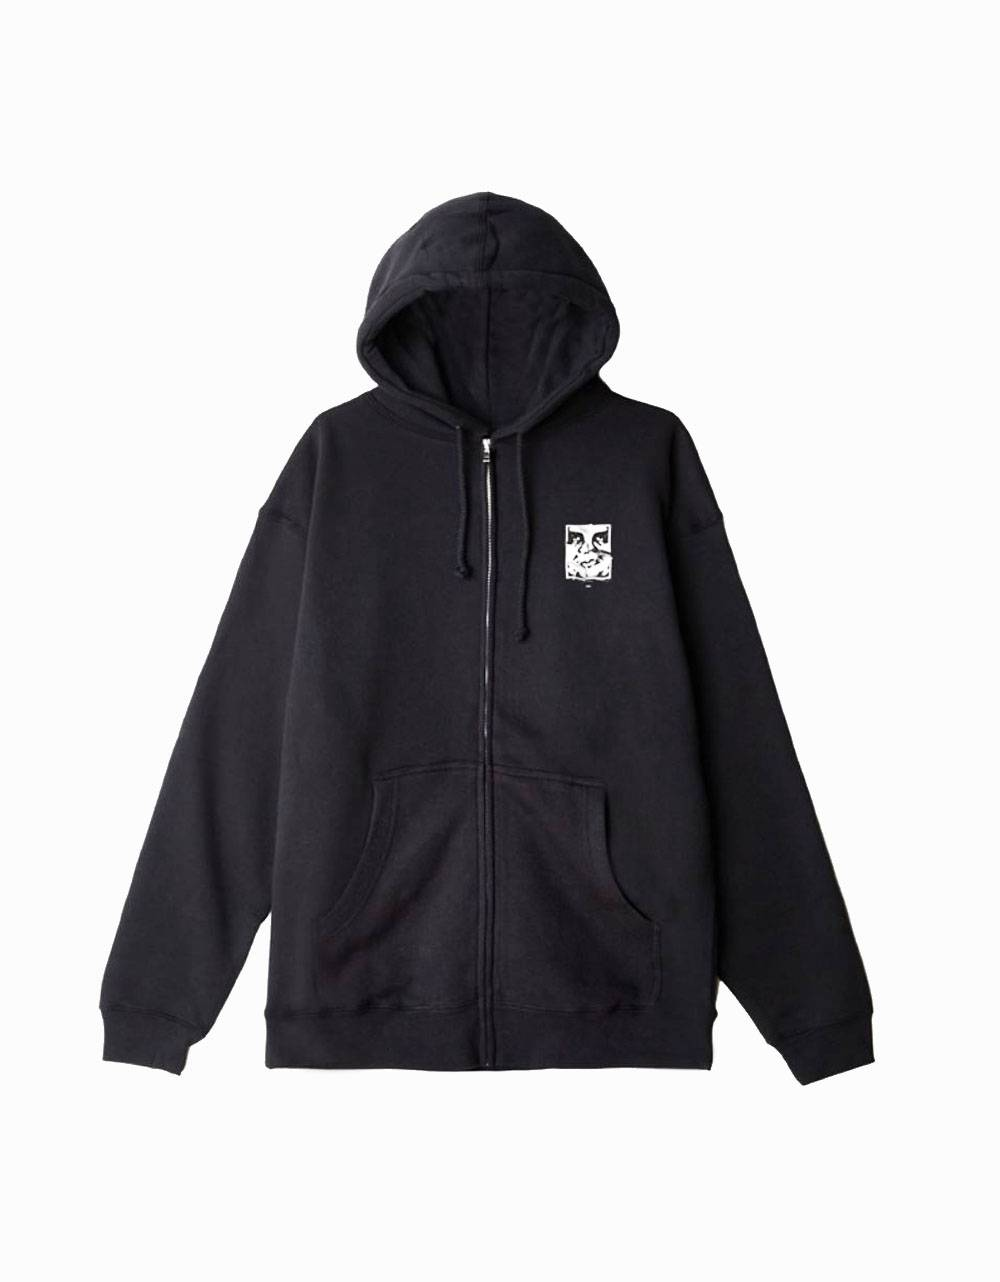 Obey cracked icon premium zip hoodie - black obey Sweater 81,15 €